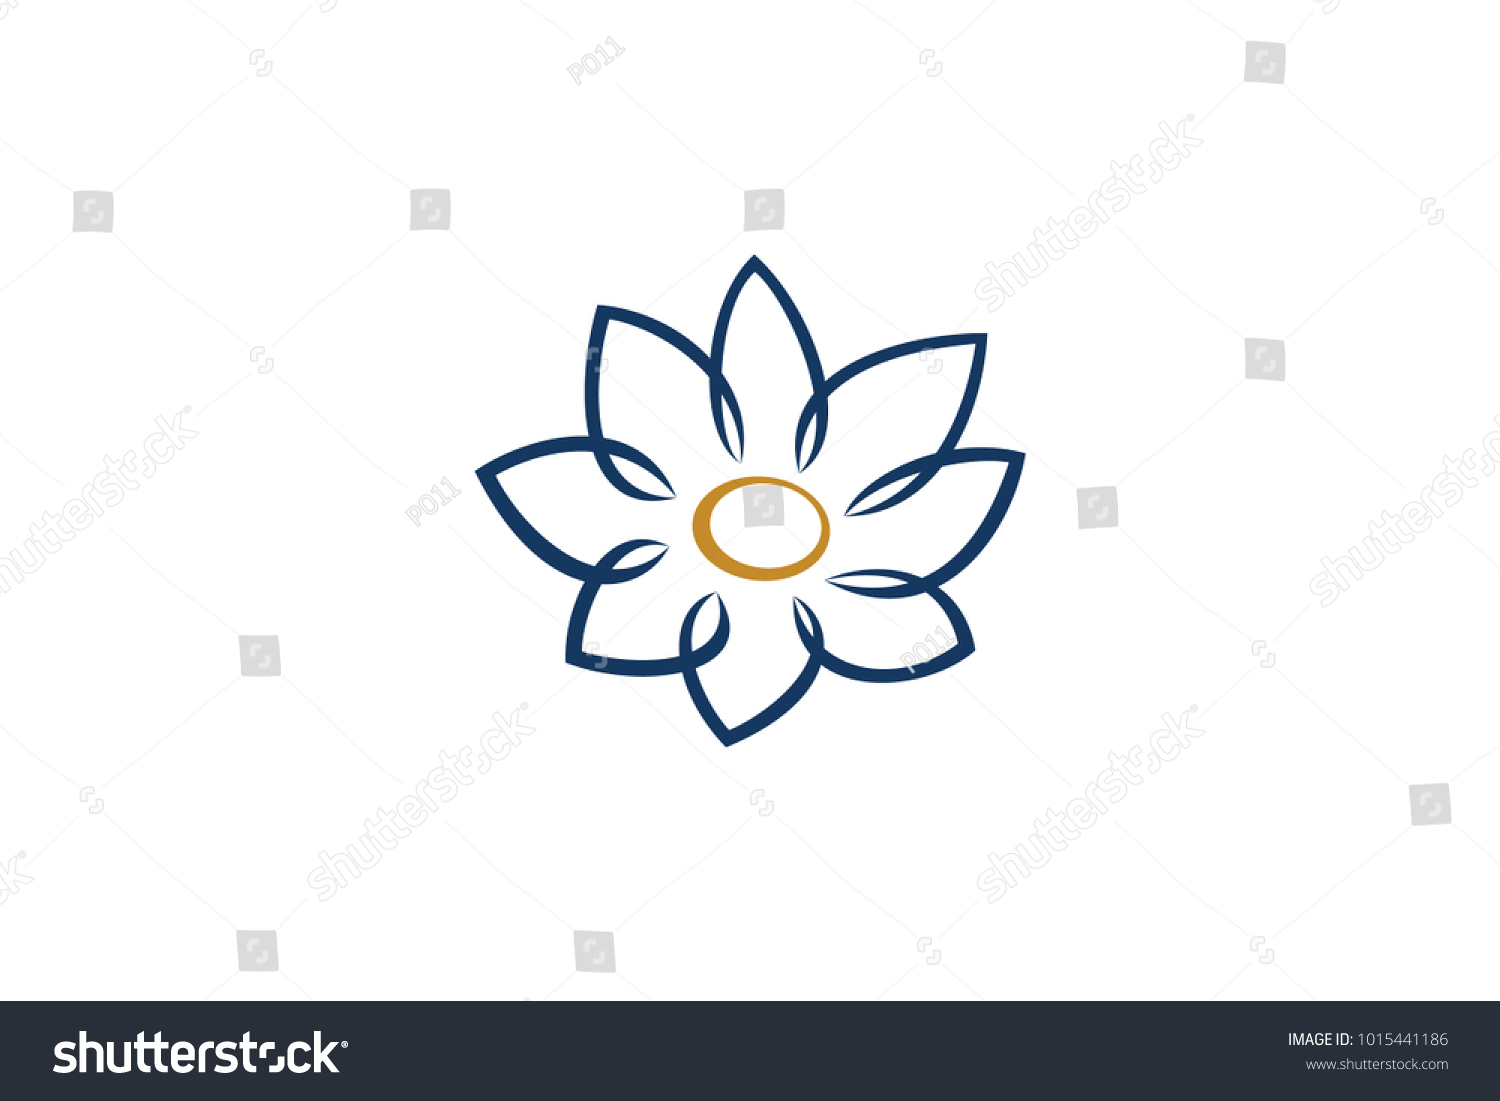 Simple lotus flower stock vector royalty free 1015441186 simple lotus flower izmirmasajfo